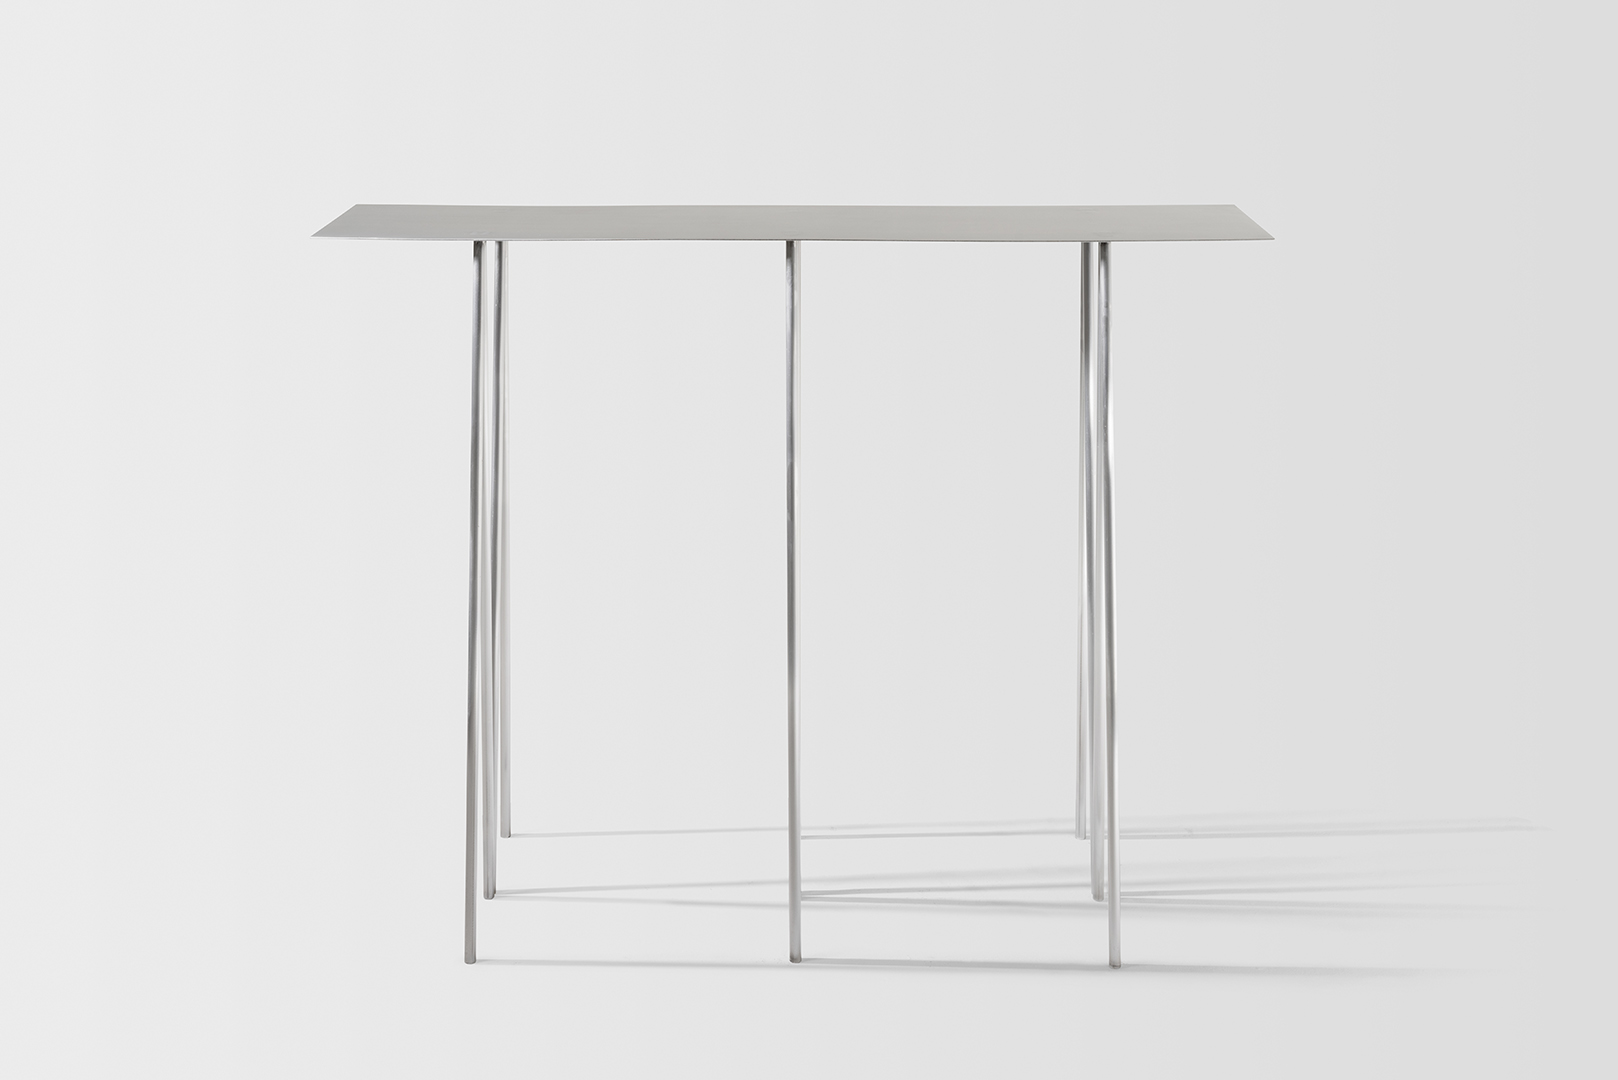 2018_PaperTable_Perspective_White_13.jpg